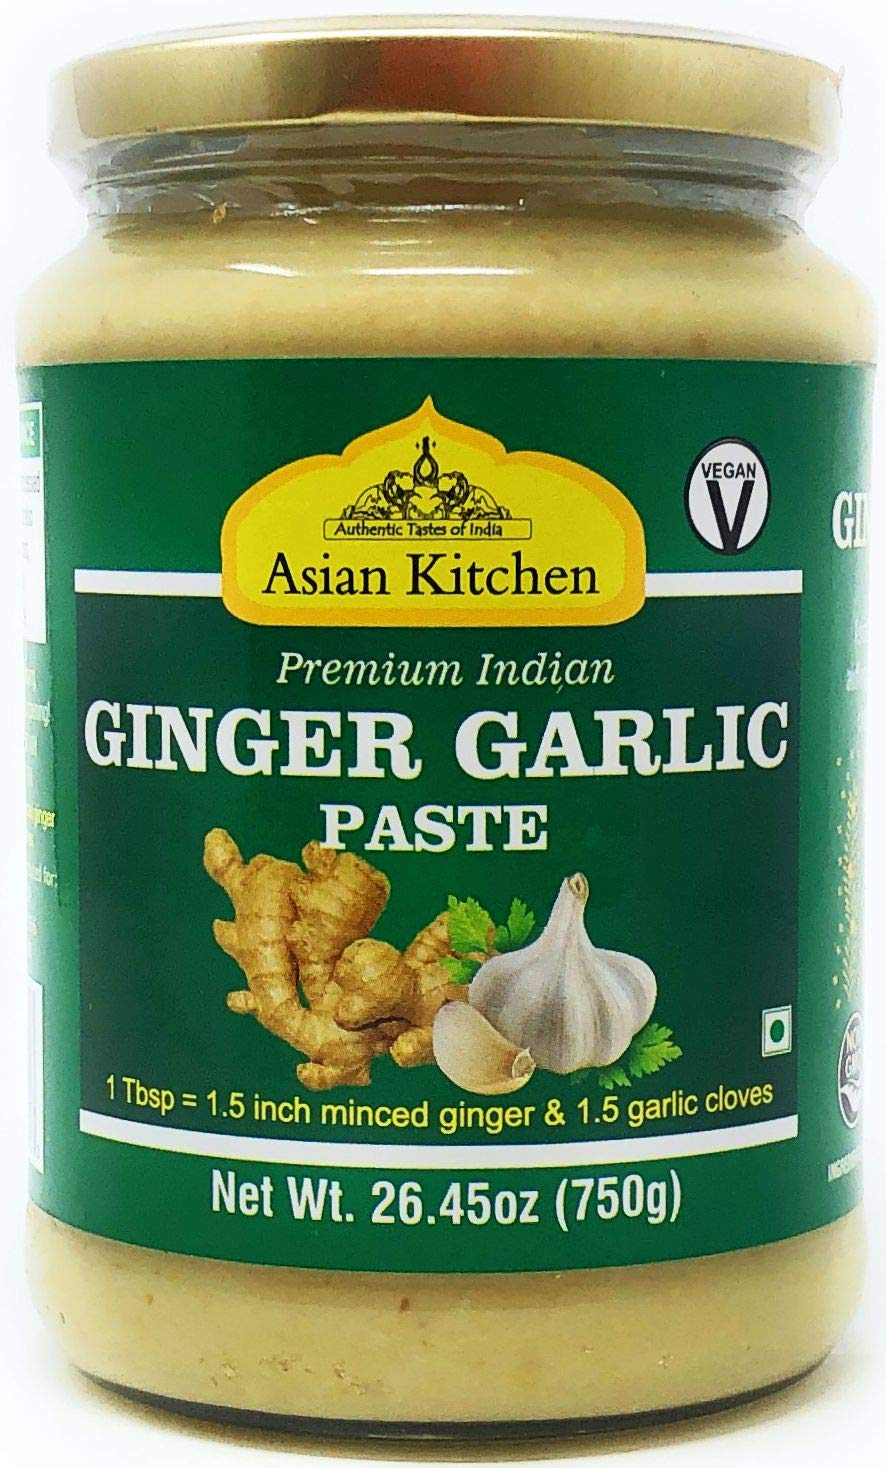 Amazon Com Asian Kitchen Ginger Garlic Cooking Paste 26 5oz 750g Vegan Glass Jar Gluten Free Non Gmo No Colors Indian Origin Grocery Gourmet Food